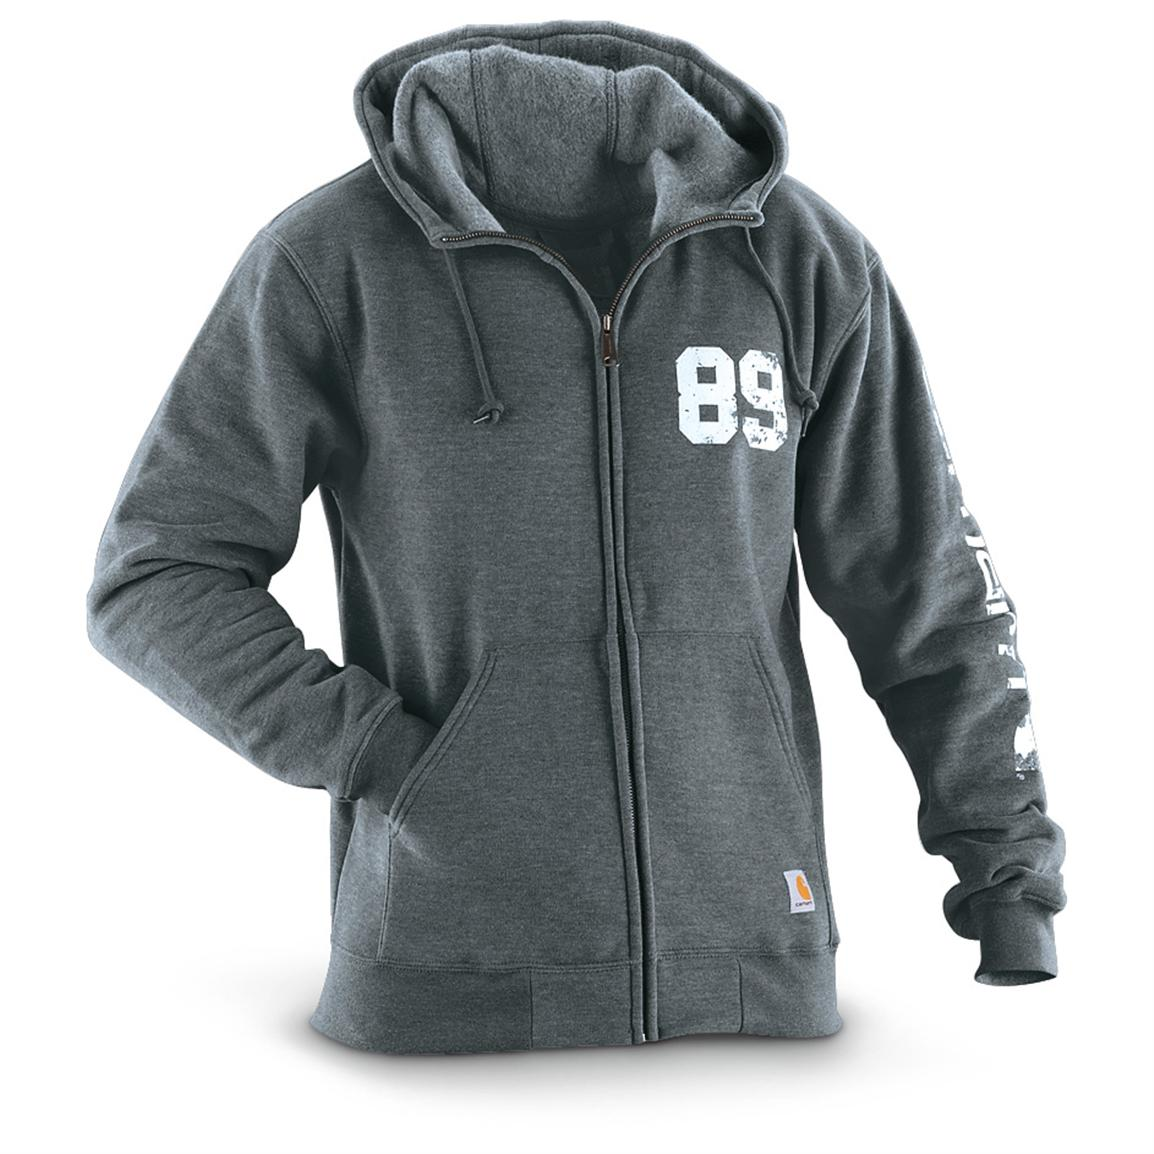 Sweatshirts / Fleece / Outerwear. Call Toll Free:() Products.